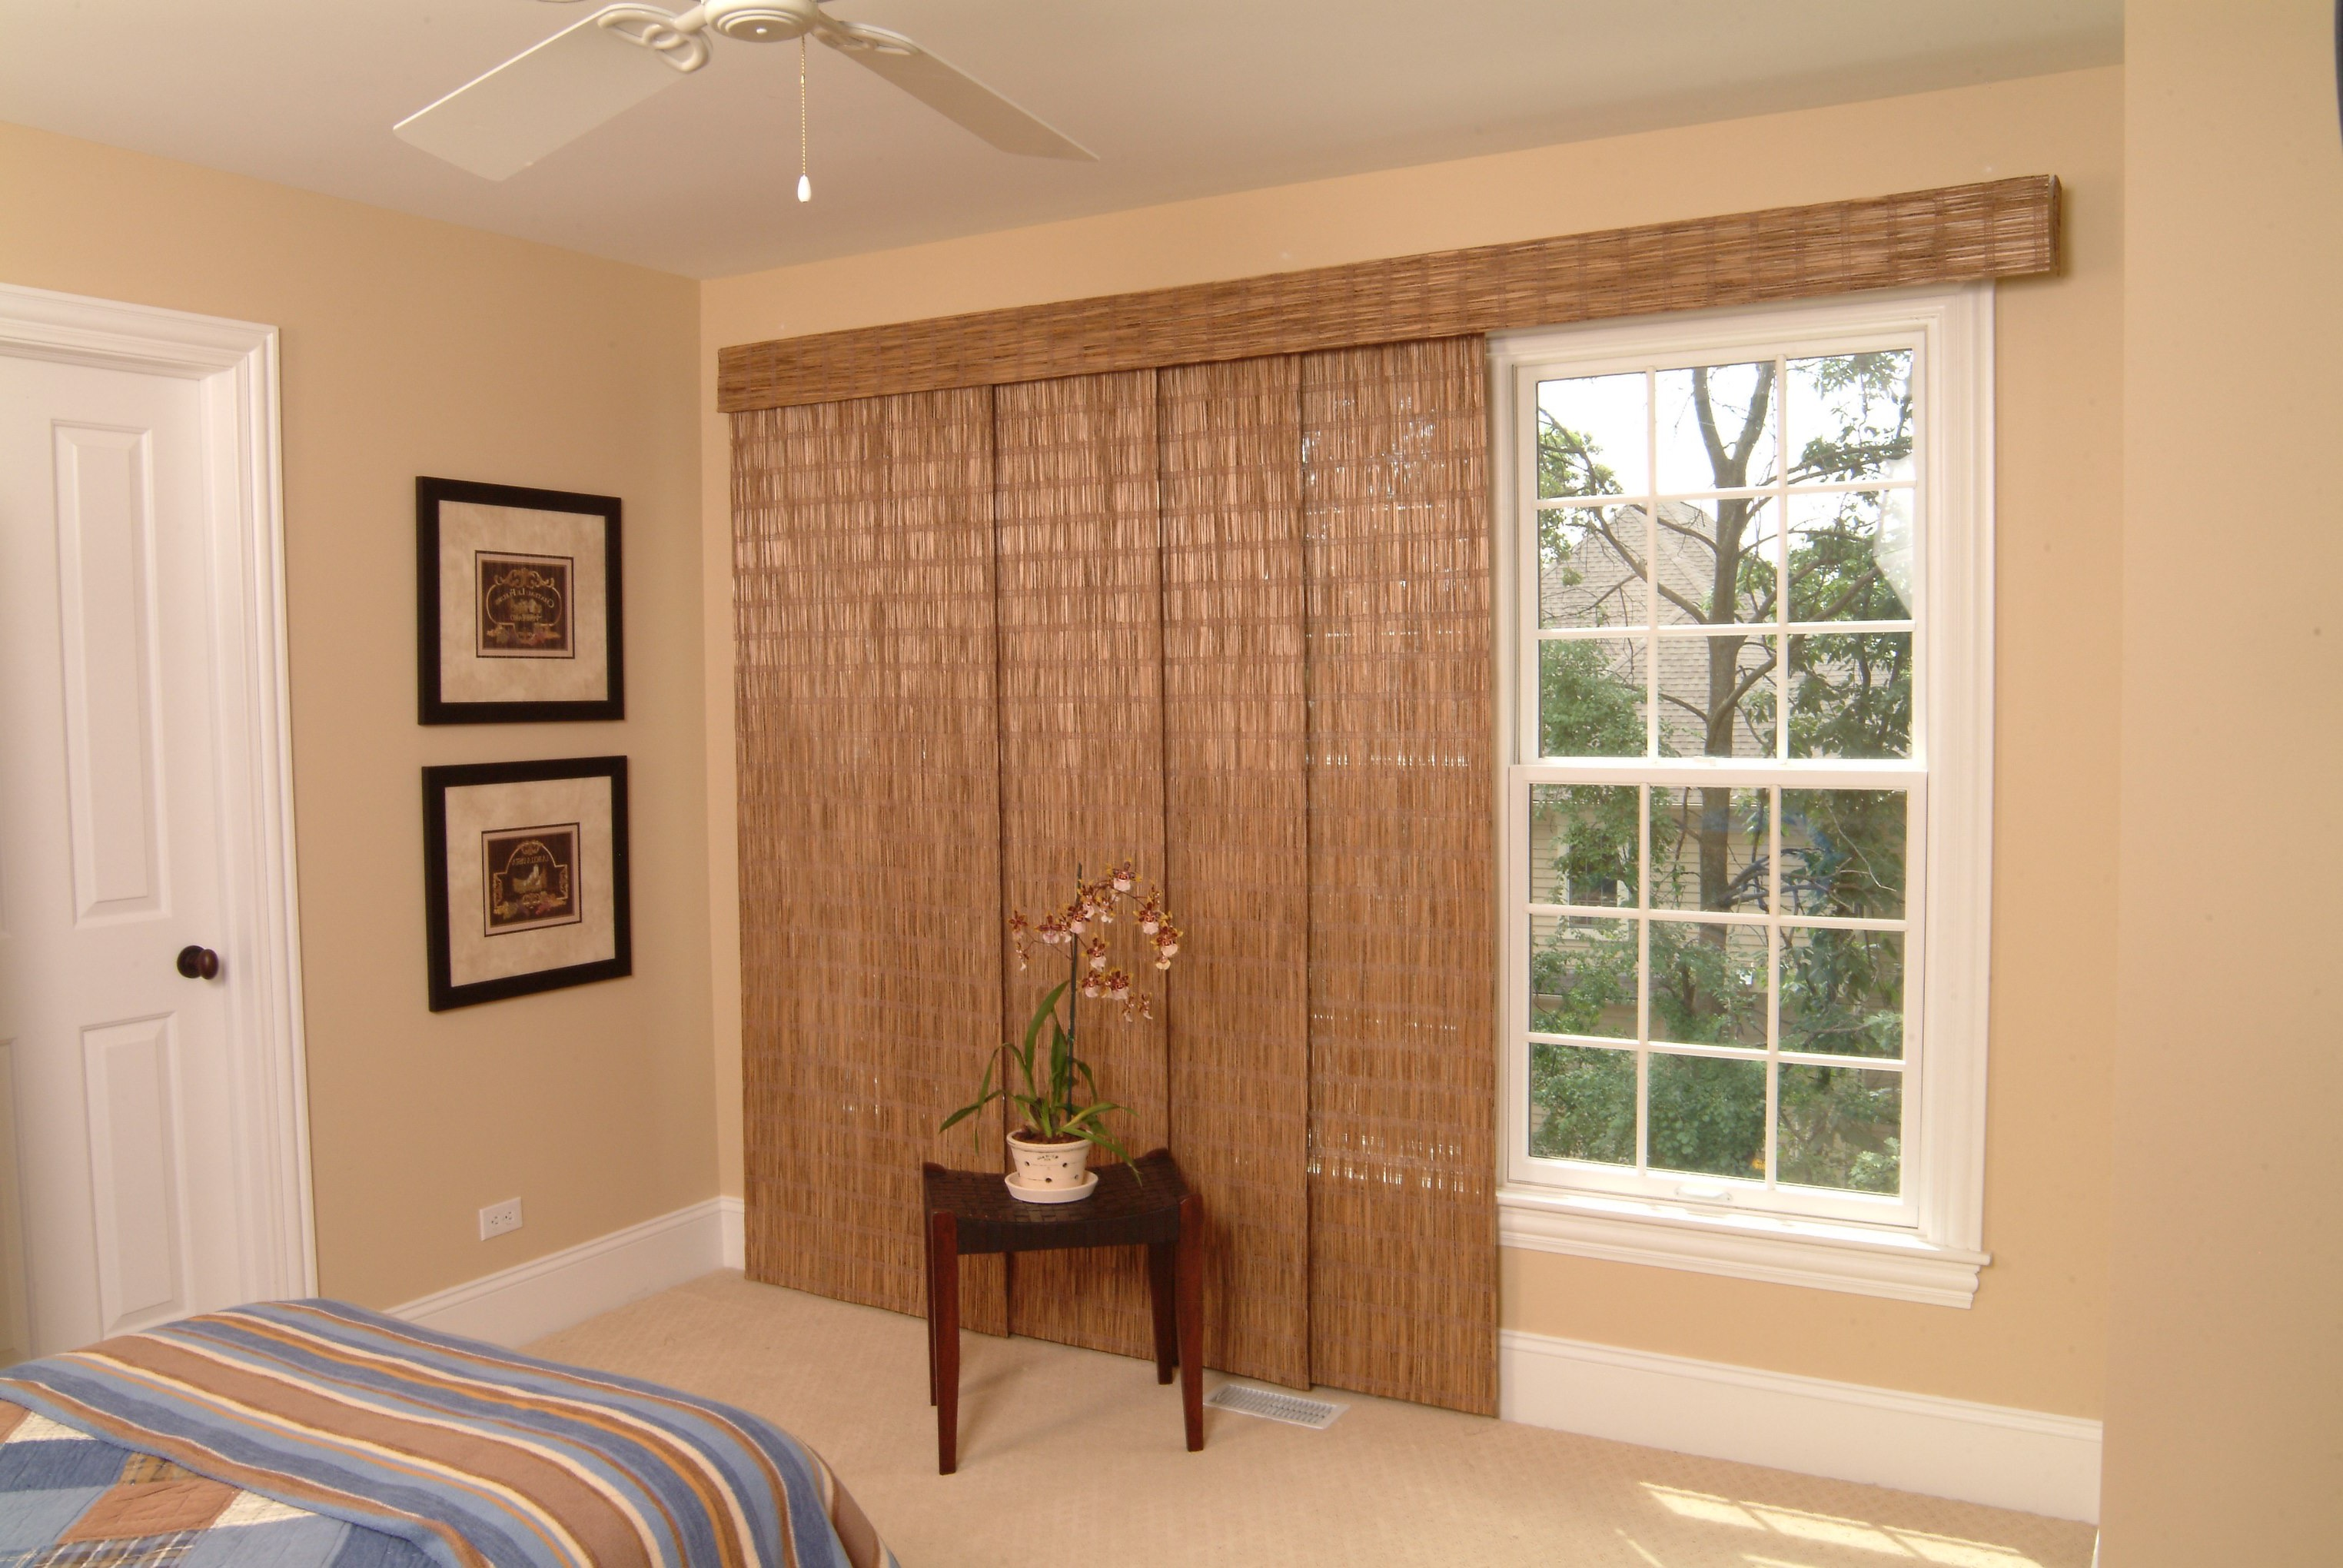 Bamboo Sliding Curtain For Windows Remodel (View 4 of 20)